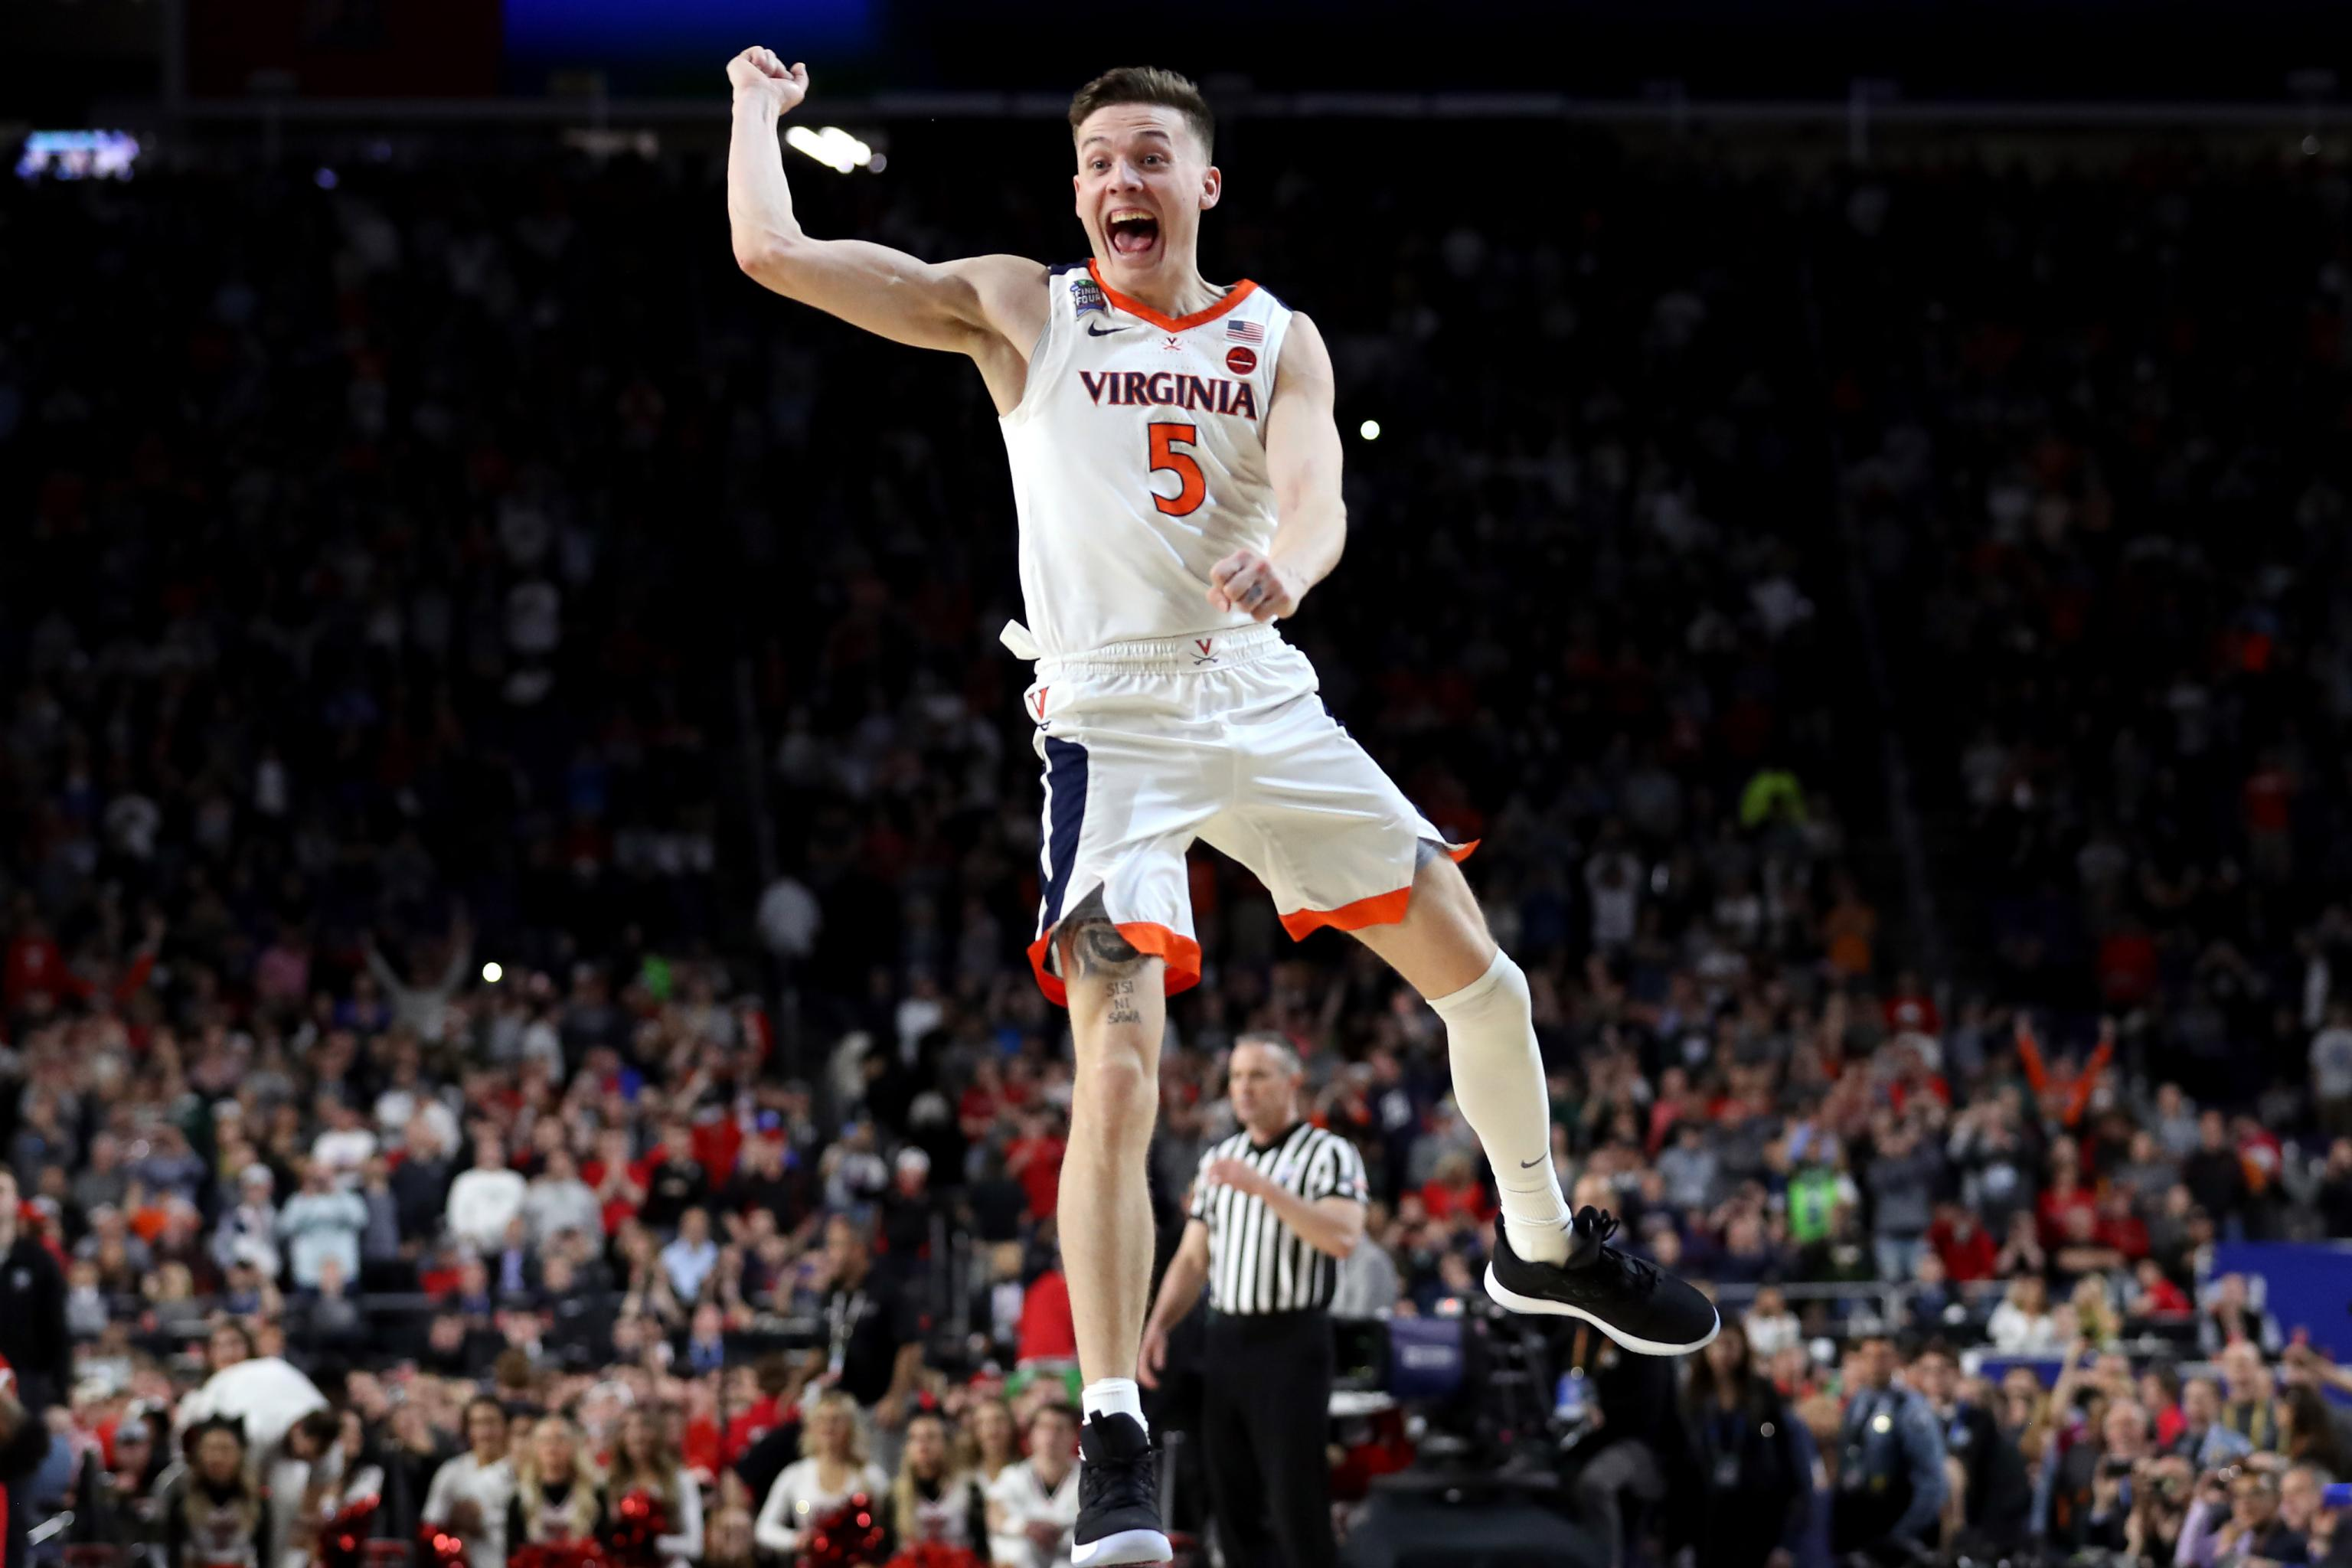 Ncaa Basketball Rankings 2018 19 Bleacher Report S Final